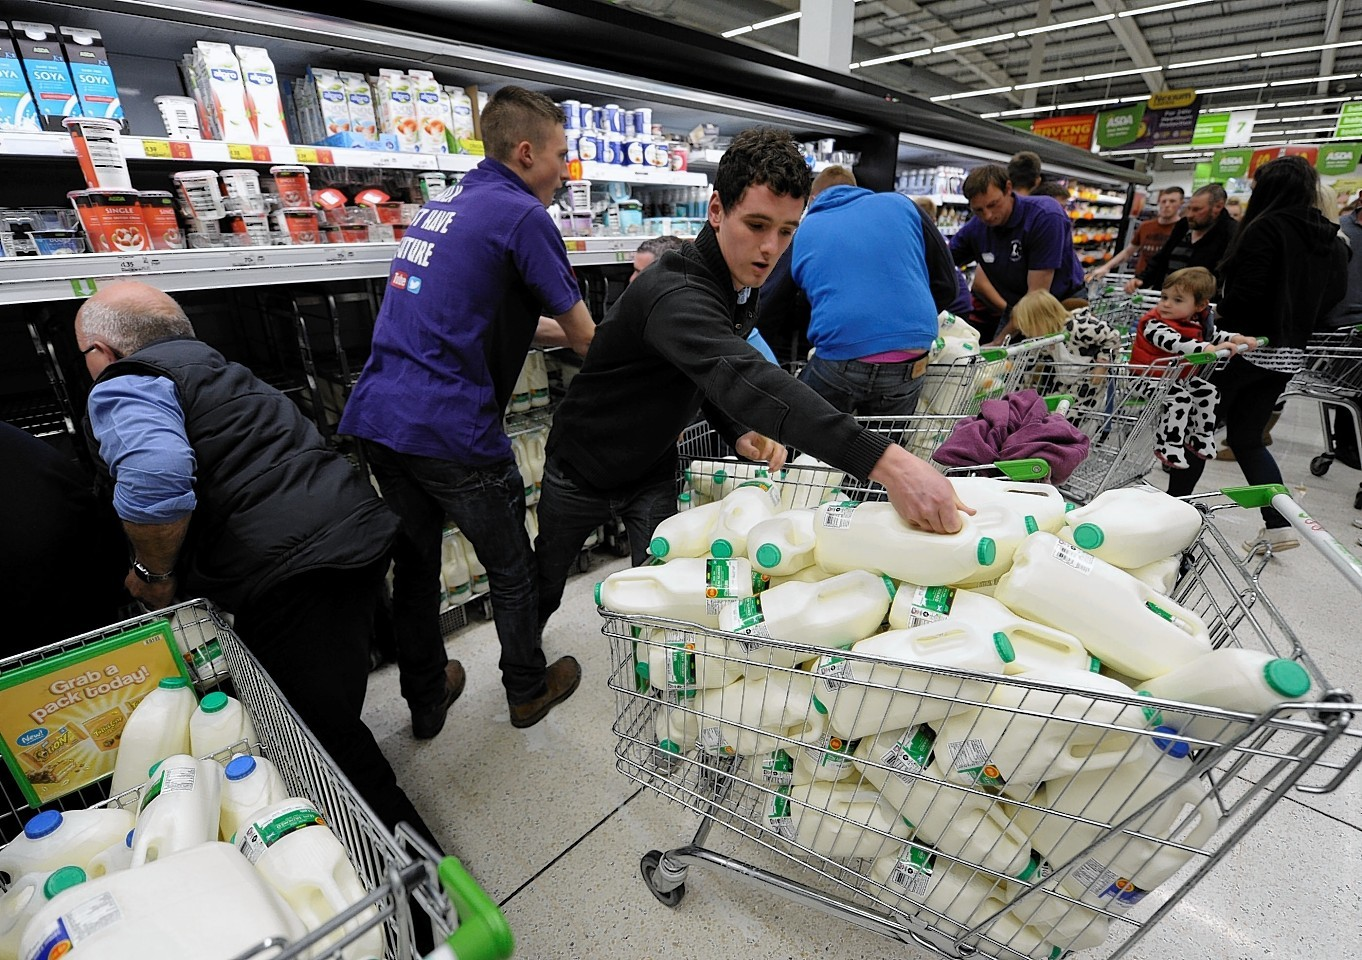 Farmers have been raiding supermarkets of milk in protest over poor prices